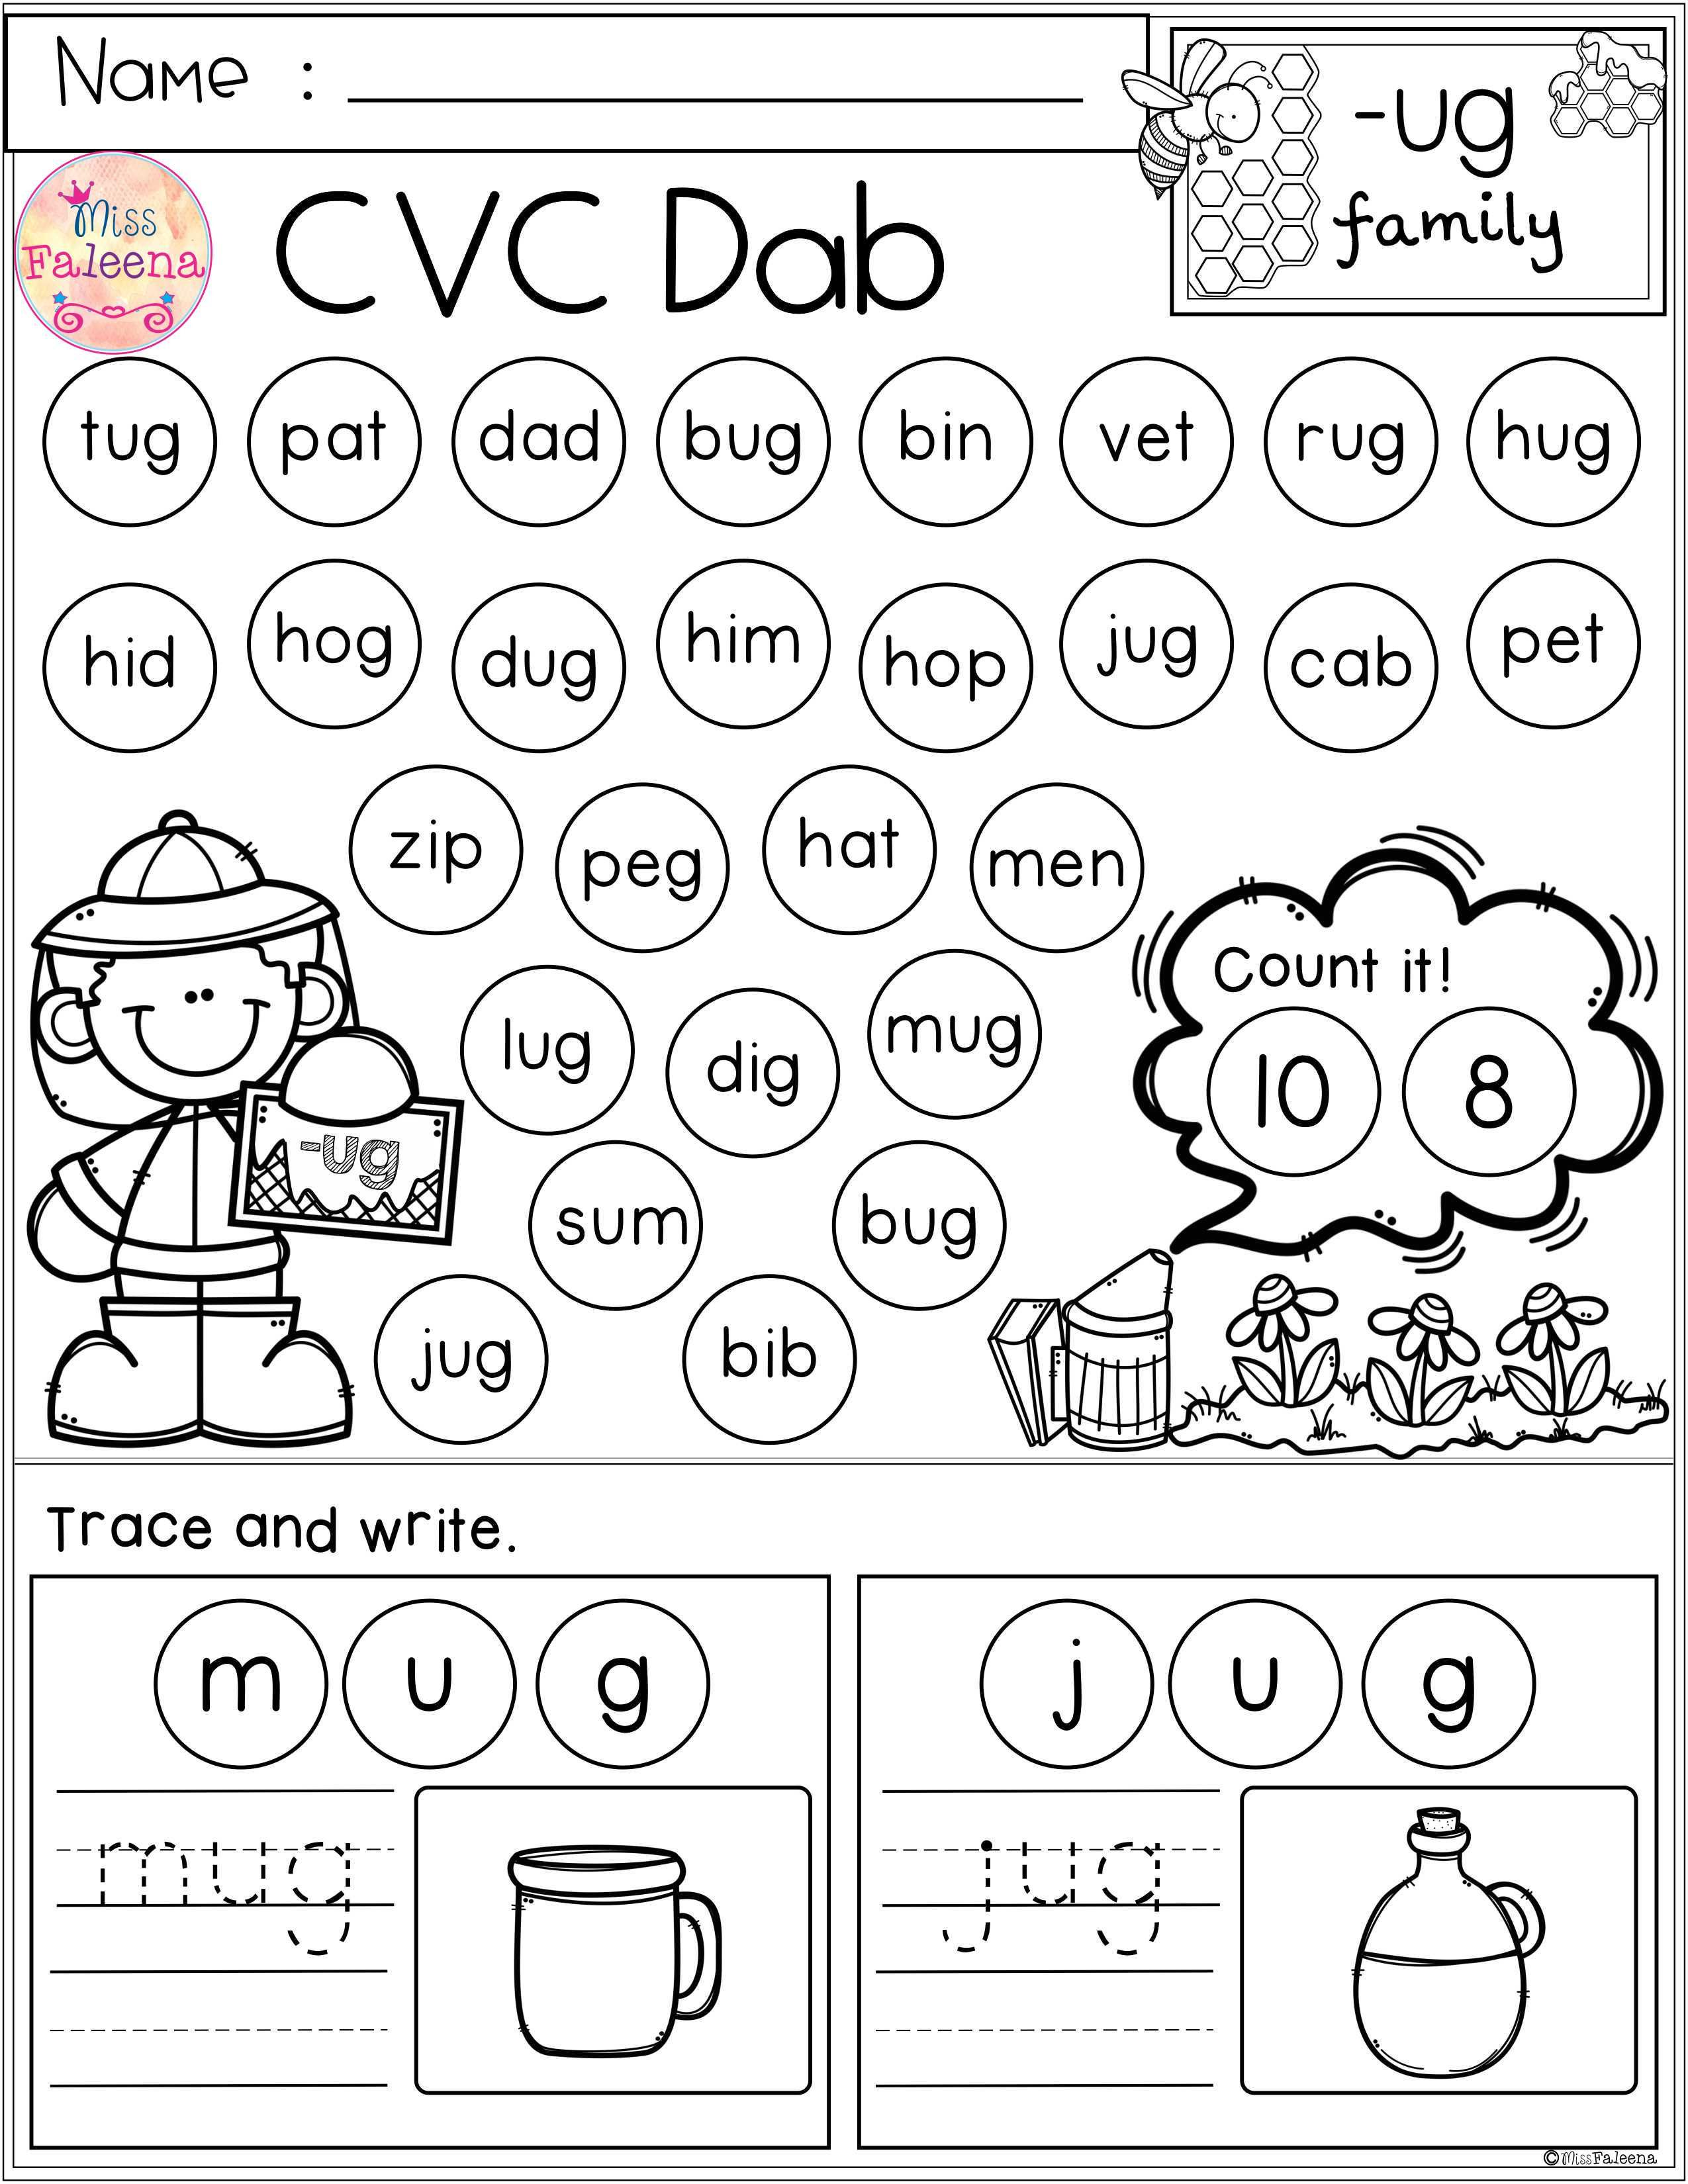 hight resolution of Cvc E Worksheets   Printable Worksheets and Activities for Teachers